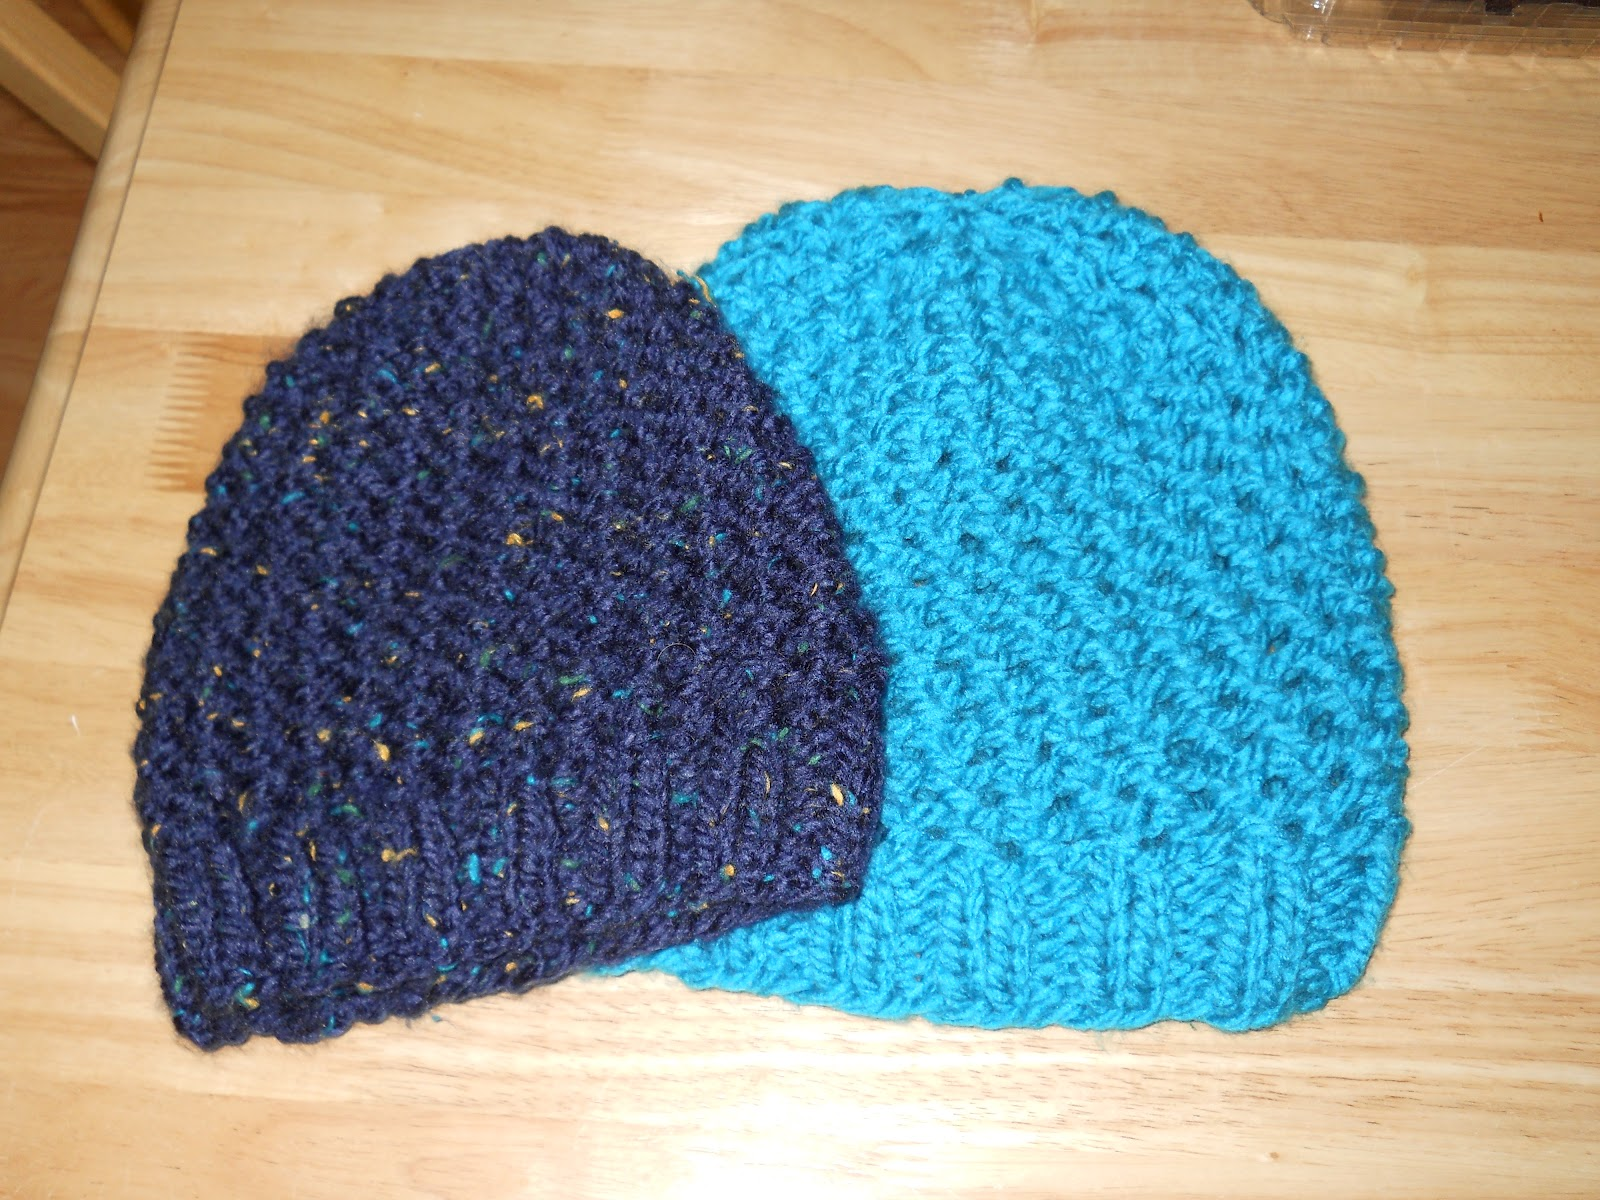 Knitted Chemo Cap Patterns Free : Knitting with Schnapps: Crossed Comfort Cap